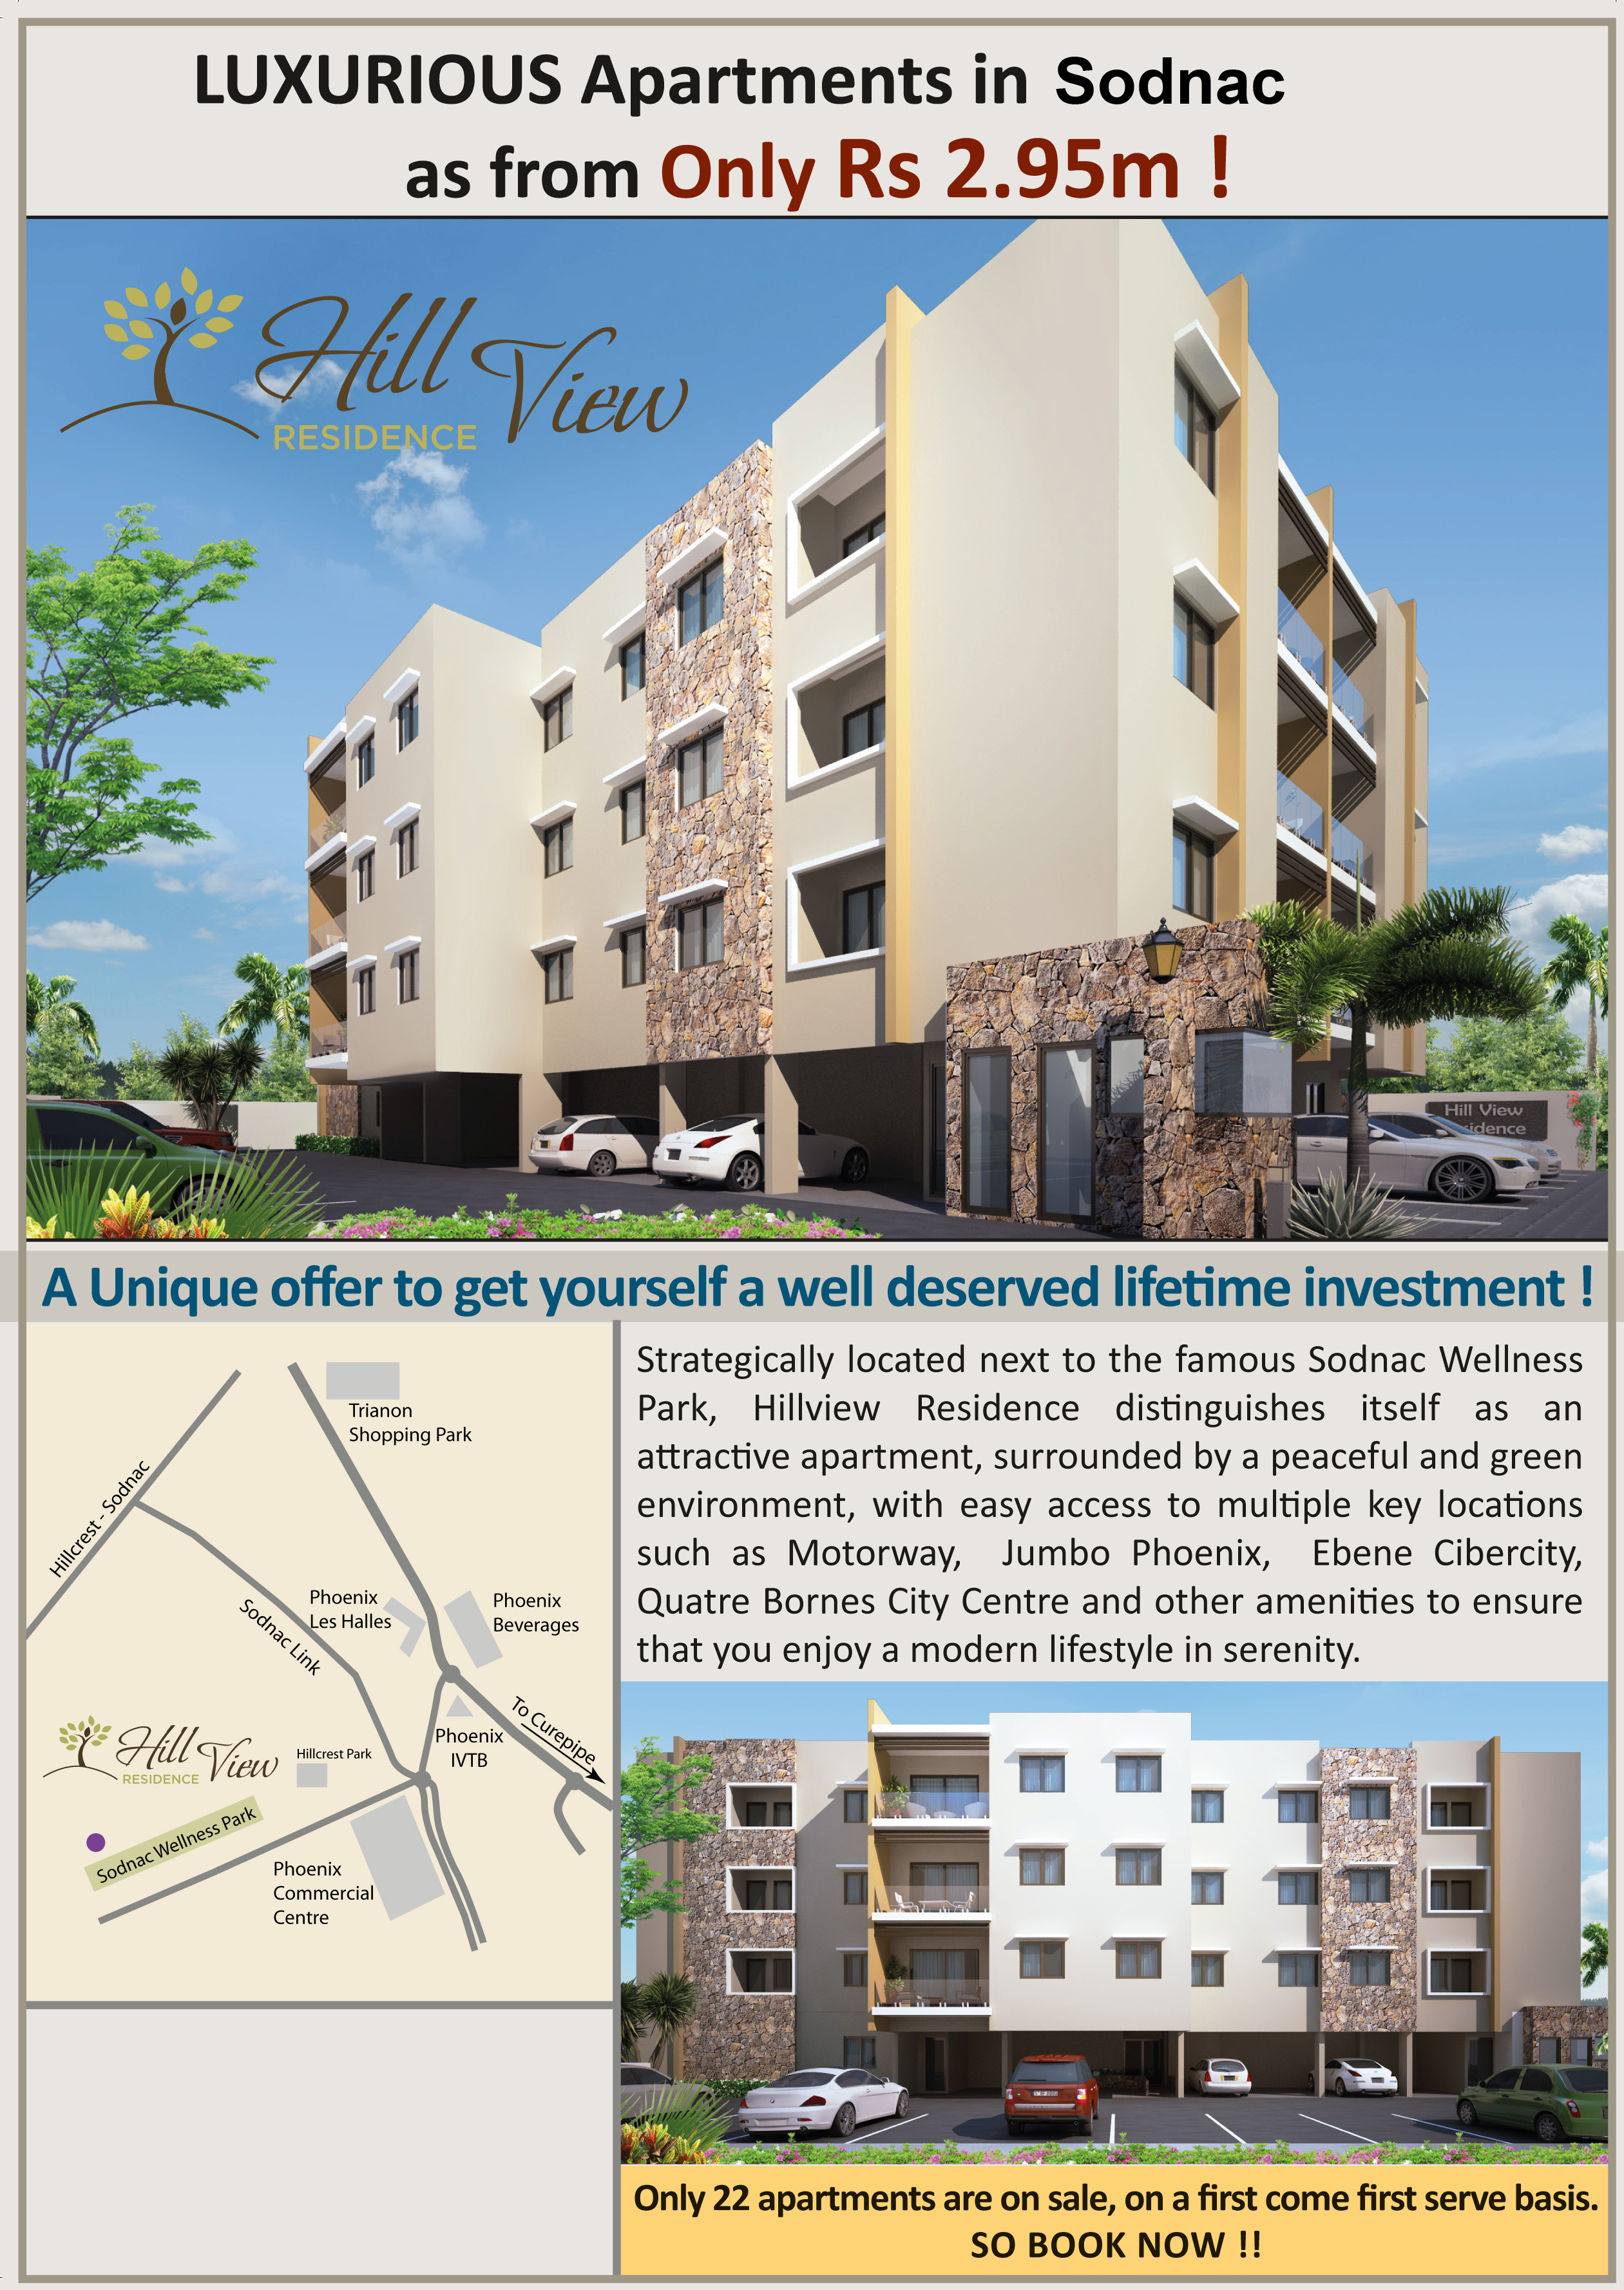 Luxurious Apartments For Sale U2013 Hill View Residence U2013 Sodnac Wellness Park  U2013 SAPA REAL ESTATE MAURITIUS